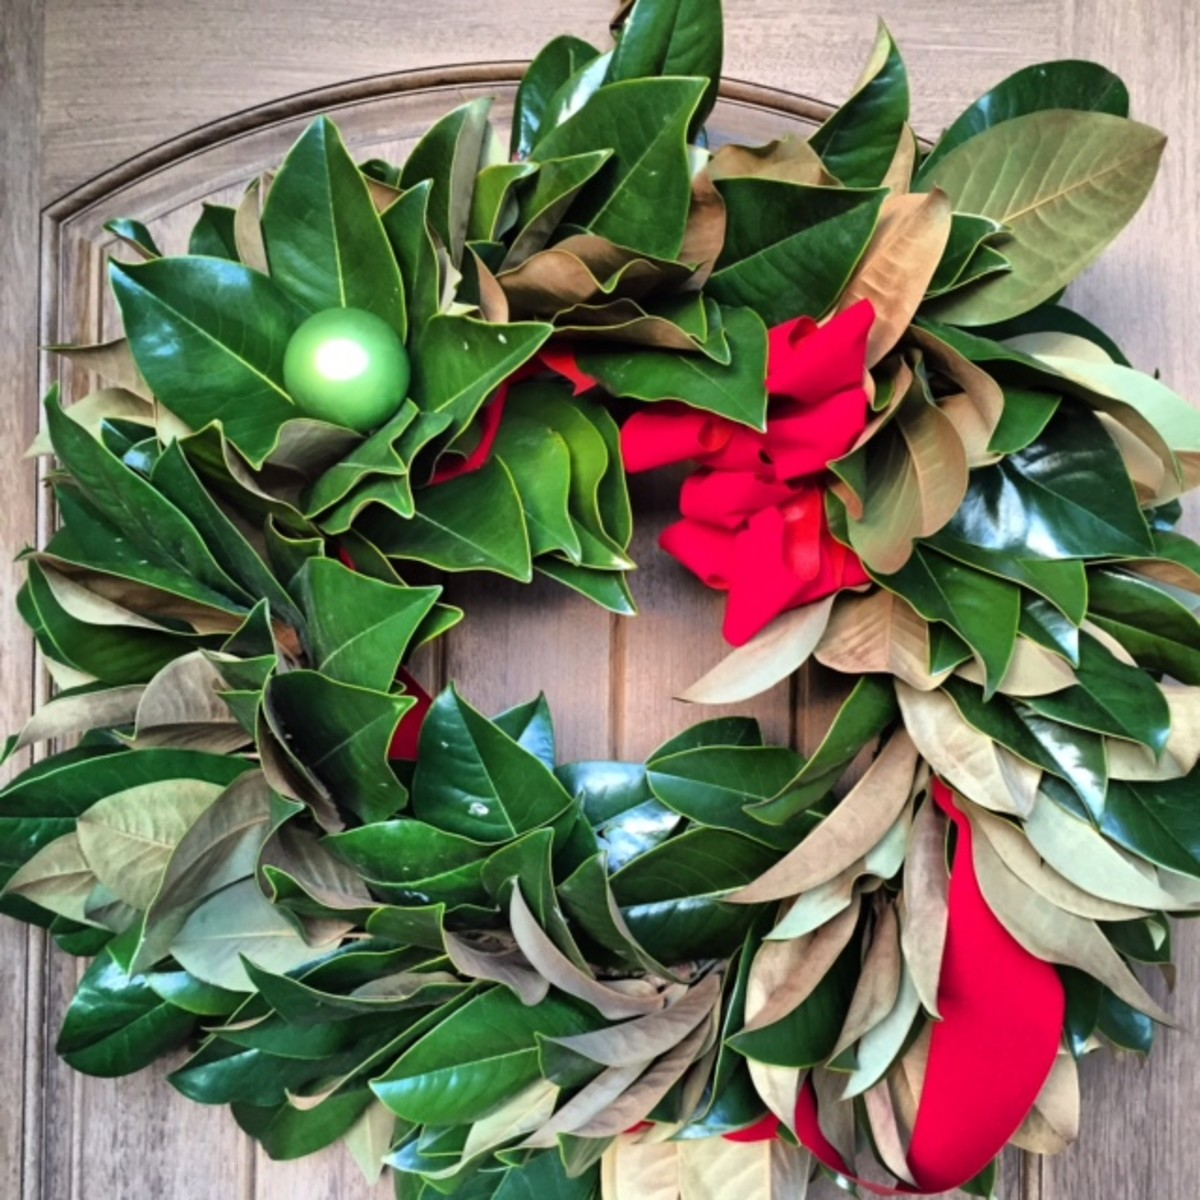 A fresh magnolia wreath makes a festive statement.